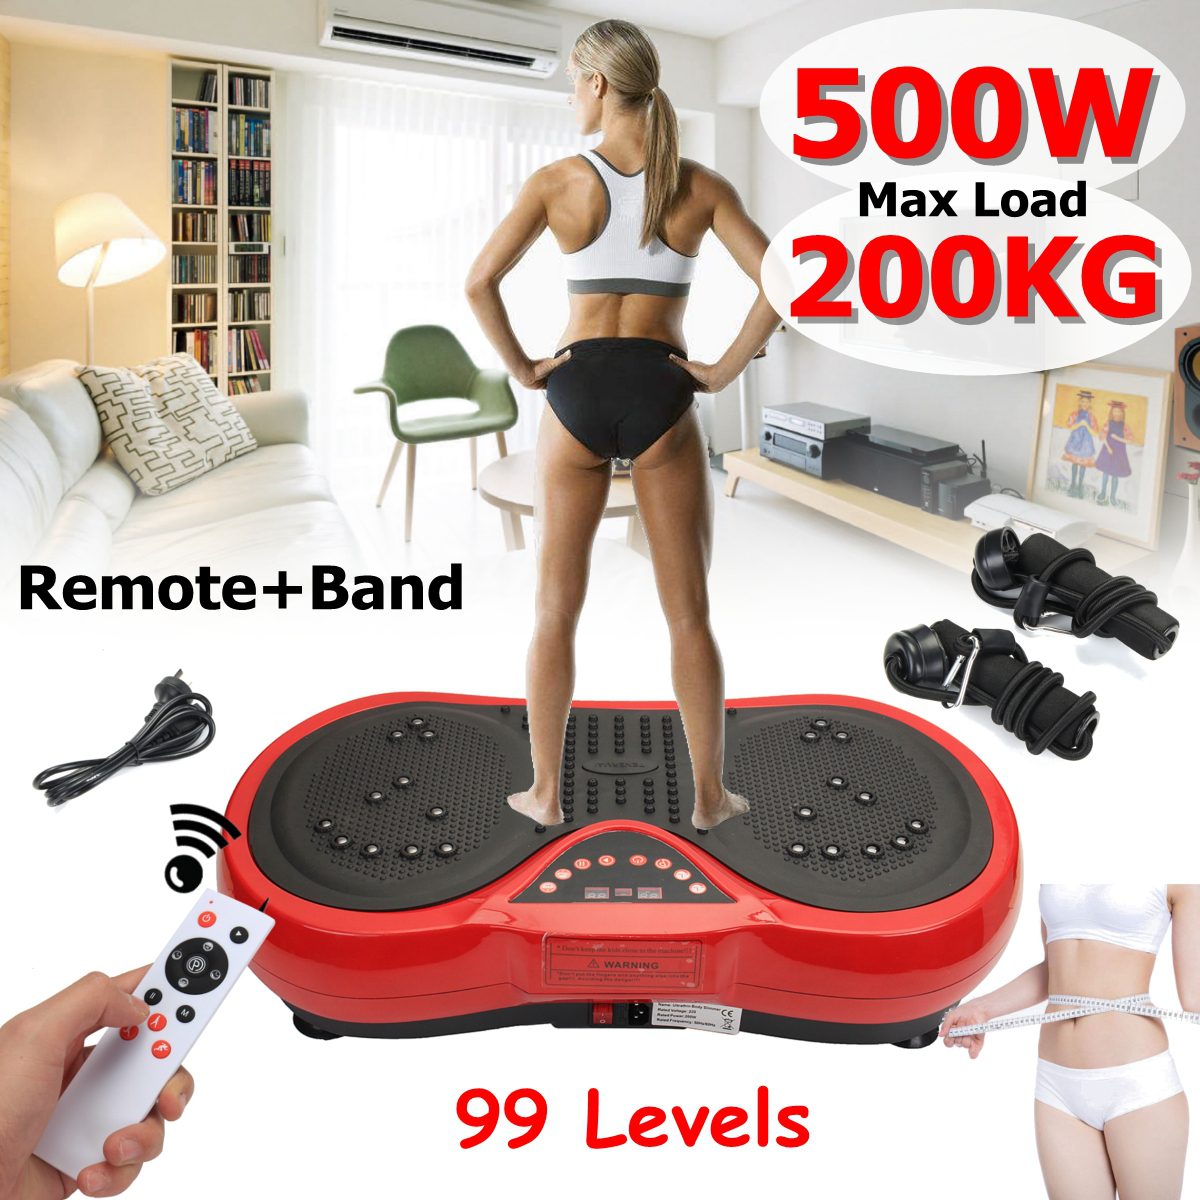 Exercise Fitness Slim Vibration Machine Trainer Plate Platform Body Shaper With Resistance Bands For Home + Remote Control+ Band